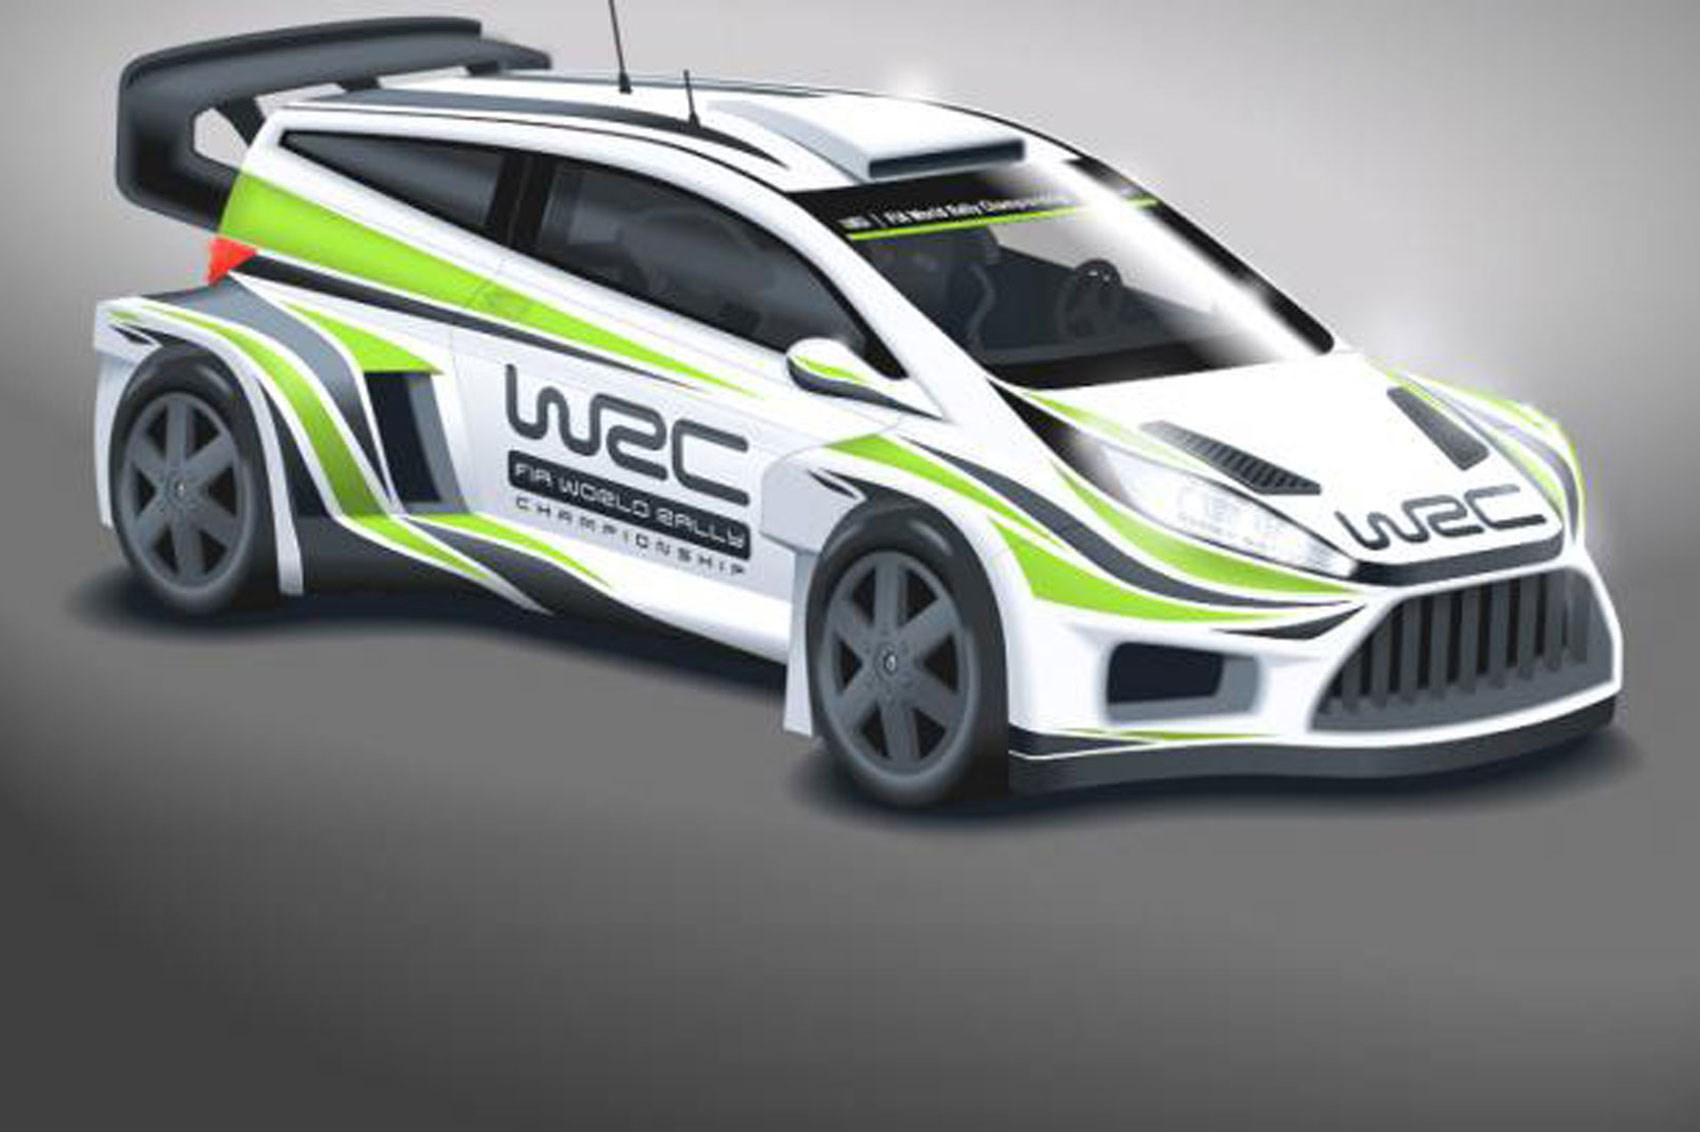 Ultrablogus  Remarkable Wild New Look For Wrc Cars In  By Car Magazine With Interesting Wrc Cars Will Get Wider Bodies Bigger Wings And More Power For  With Beautiful  Trans Am Interior Also  Chevy Cruze Interior In Addition Jeep Wrangler Arctic Edition Interior And Parking Garage Interior As Well As Detail Interior Of Car Additionally Drag Car Interior From Carmagazinecouk With Ultrablogus  Interesting Wild New Look For Wrc Cars In  By Car Magazine With Beautiful Wrc Cars Will Get Wider Bodies Bigger Wings And More Power For  And Remarkable  Trans Am Interior Also  Chevy Cruze Interior In Addition Jeep Wrangler Arctic Edition Interior From Carmagazinecouk